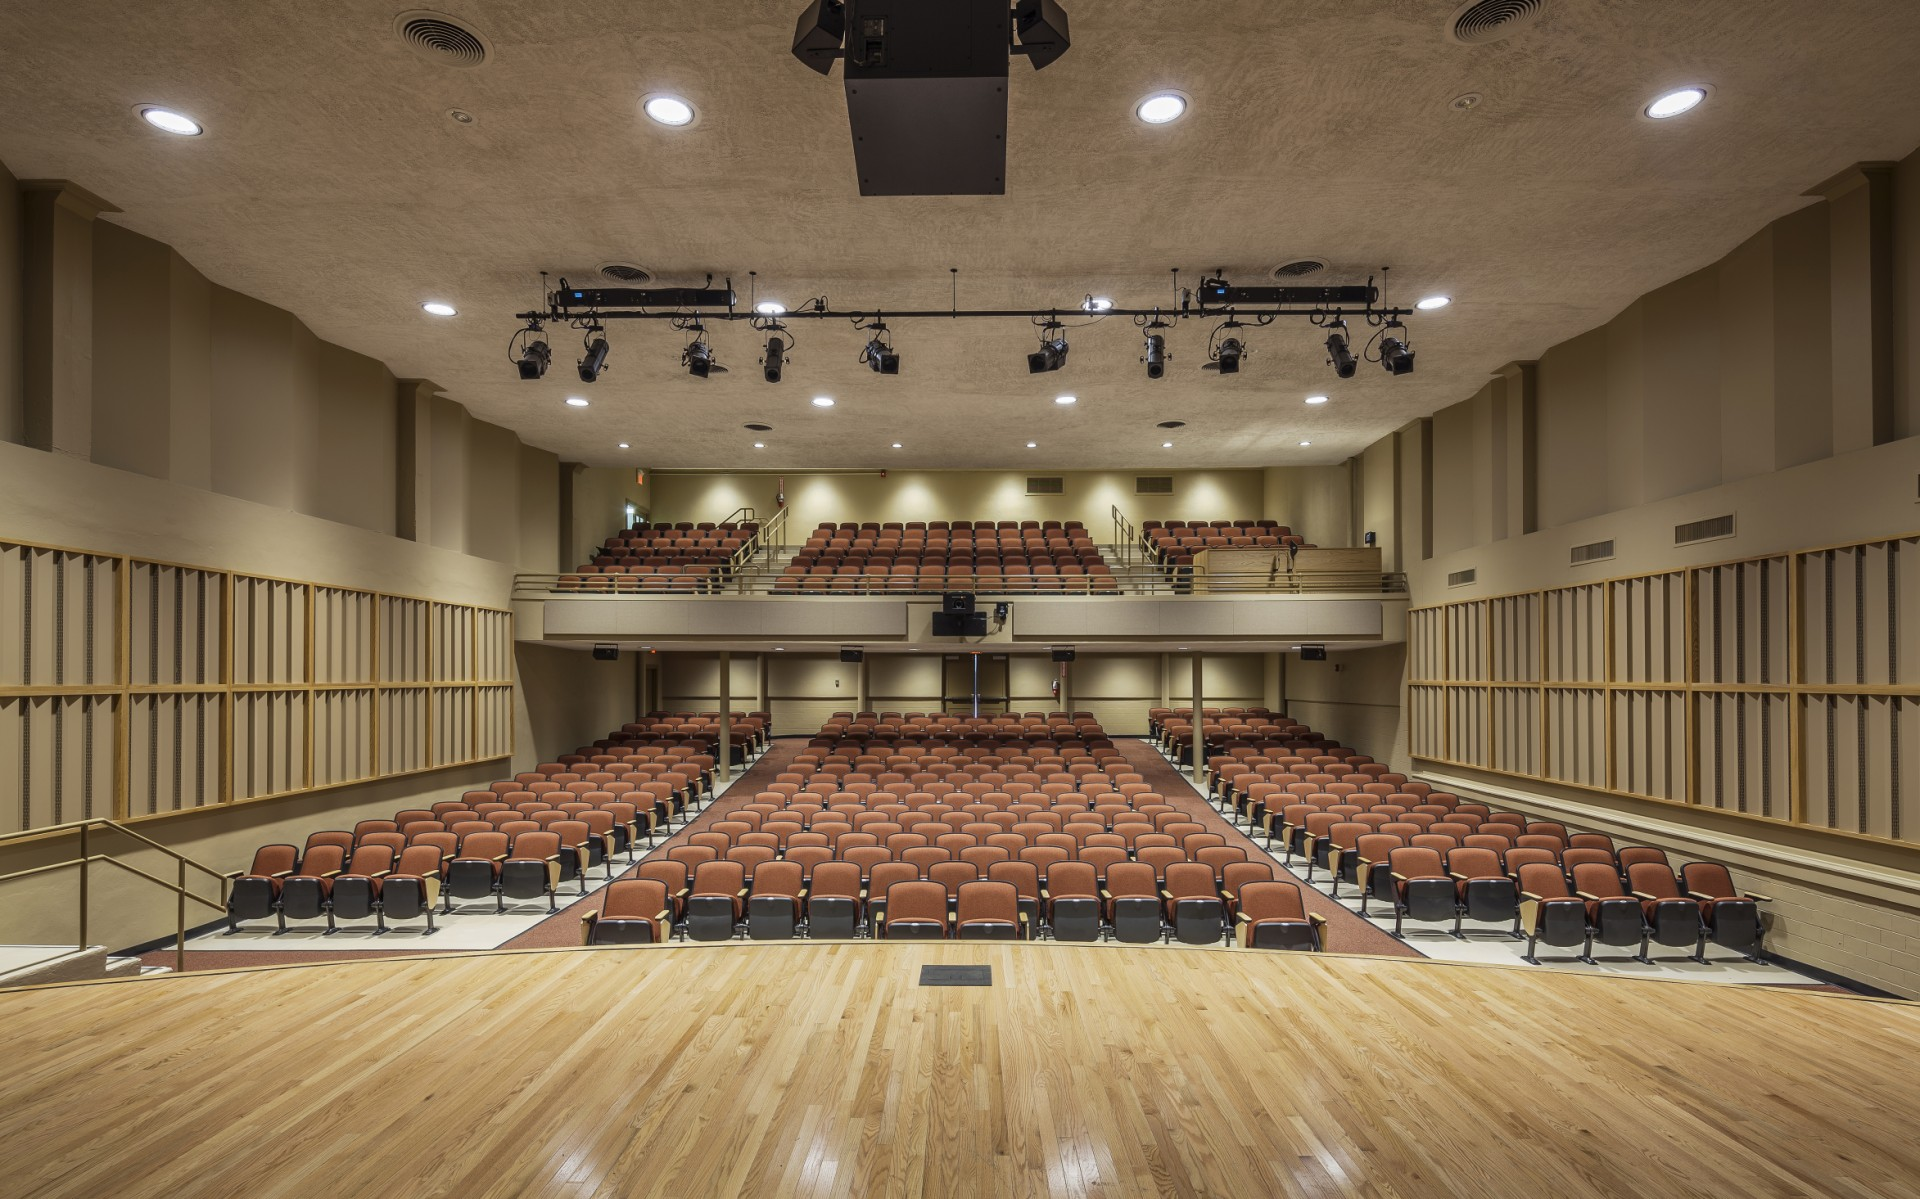 The result has increased the versatility and performance of the lighting system, eliminating maintenance costs.